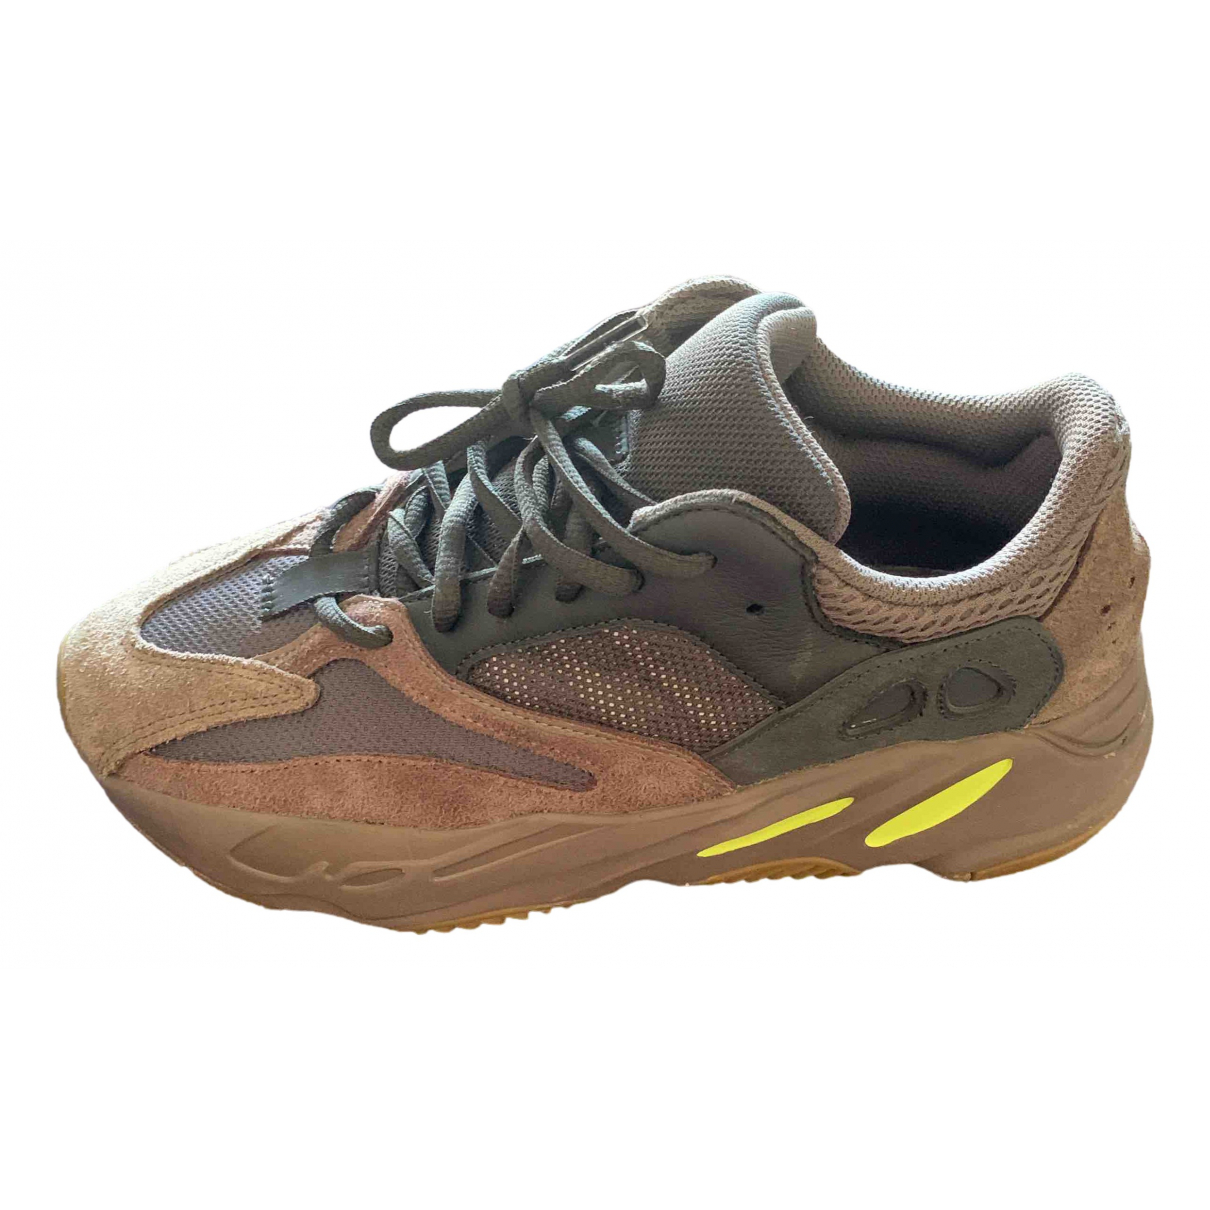 Yeezy X Adidas Boost 700 V1  Brown Suede Trainers for Women 40 EU